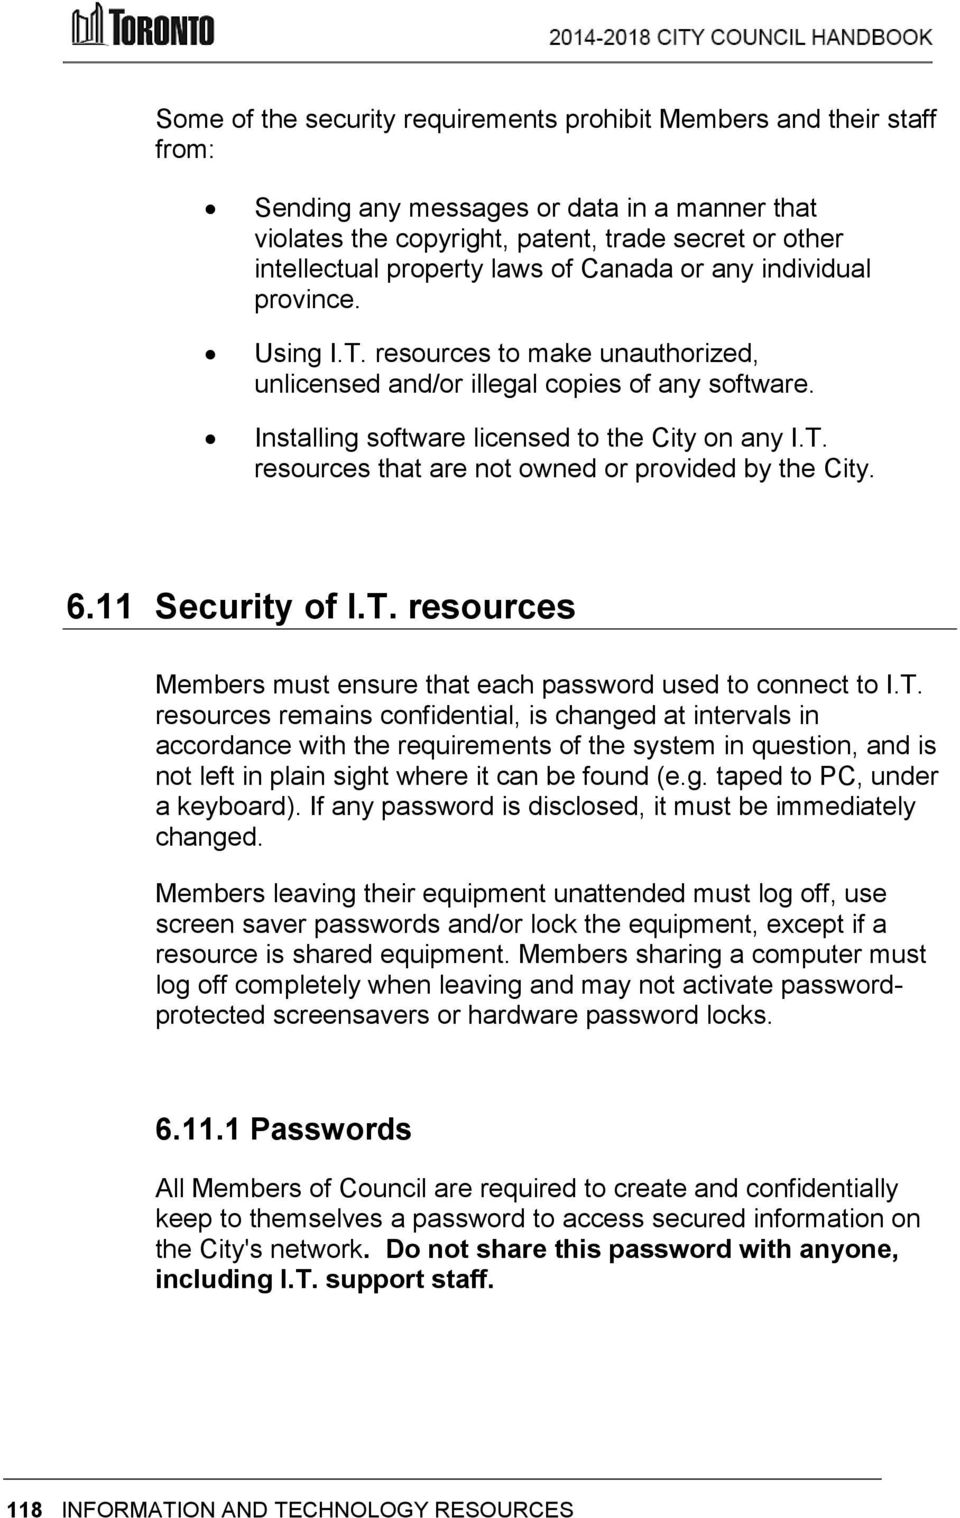 6.11 Security of I.T. resources Members must ensure that each password used to connect to I.T. resources remains confidential, is changed at intervals in accordance with the requirements of the system in question, and is not left in plain sight where it can be found (e.